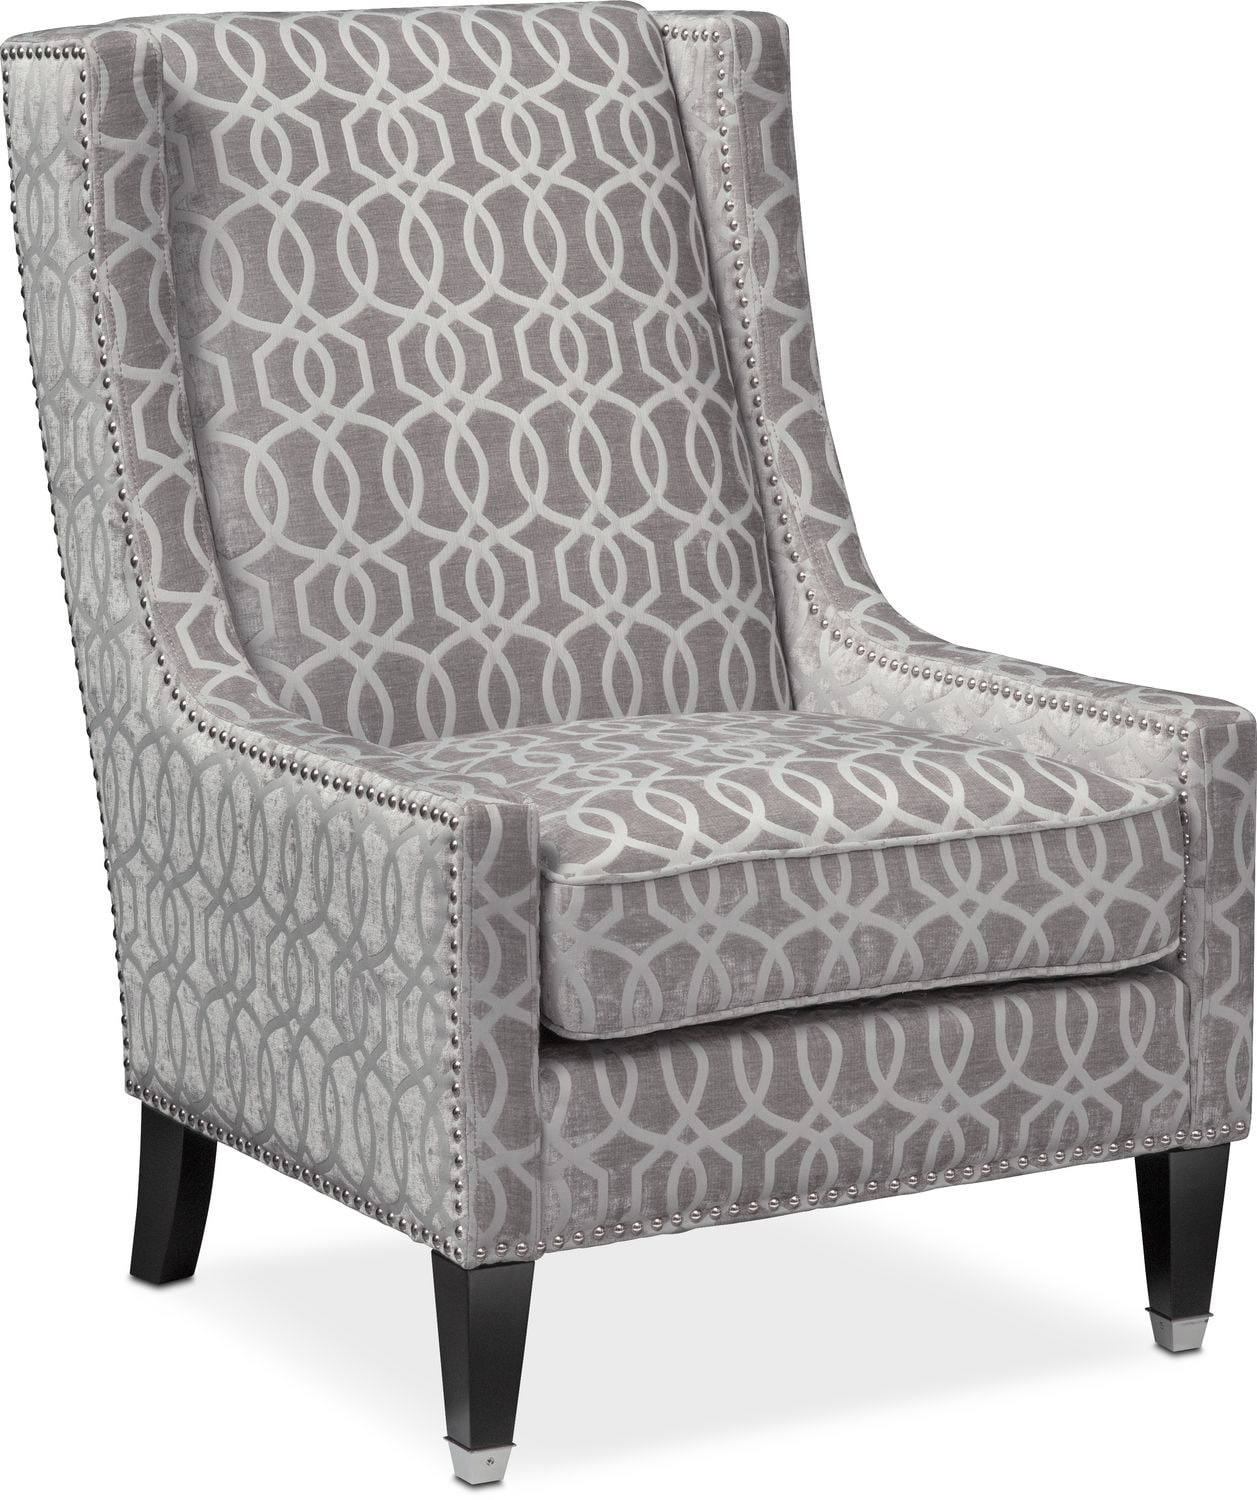 Rocking Accent Chairs Venn Accent Chair Gray